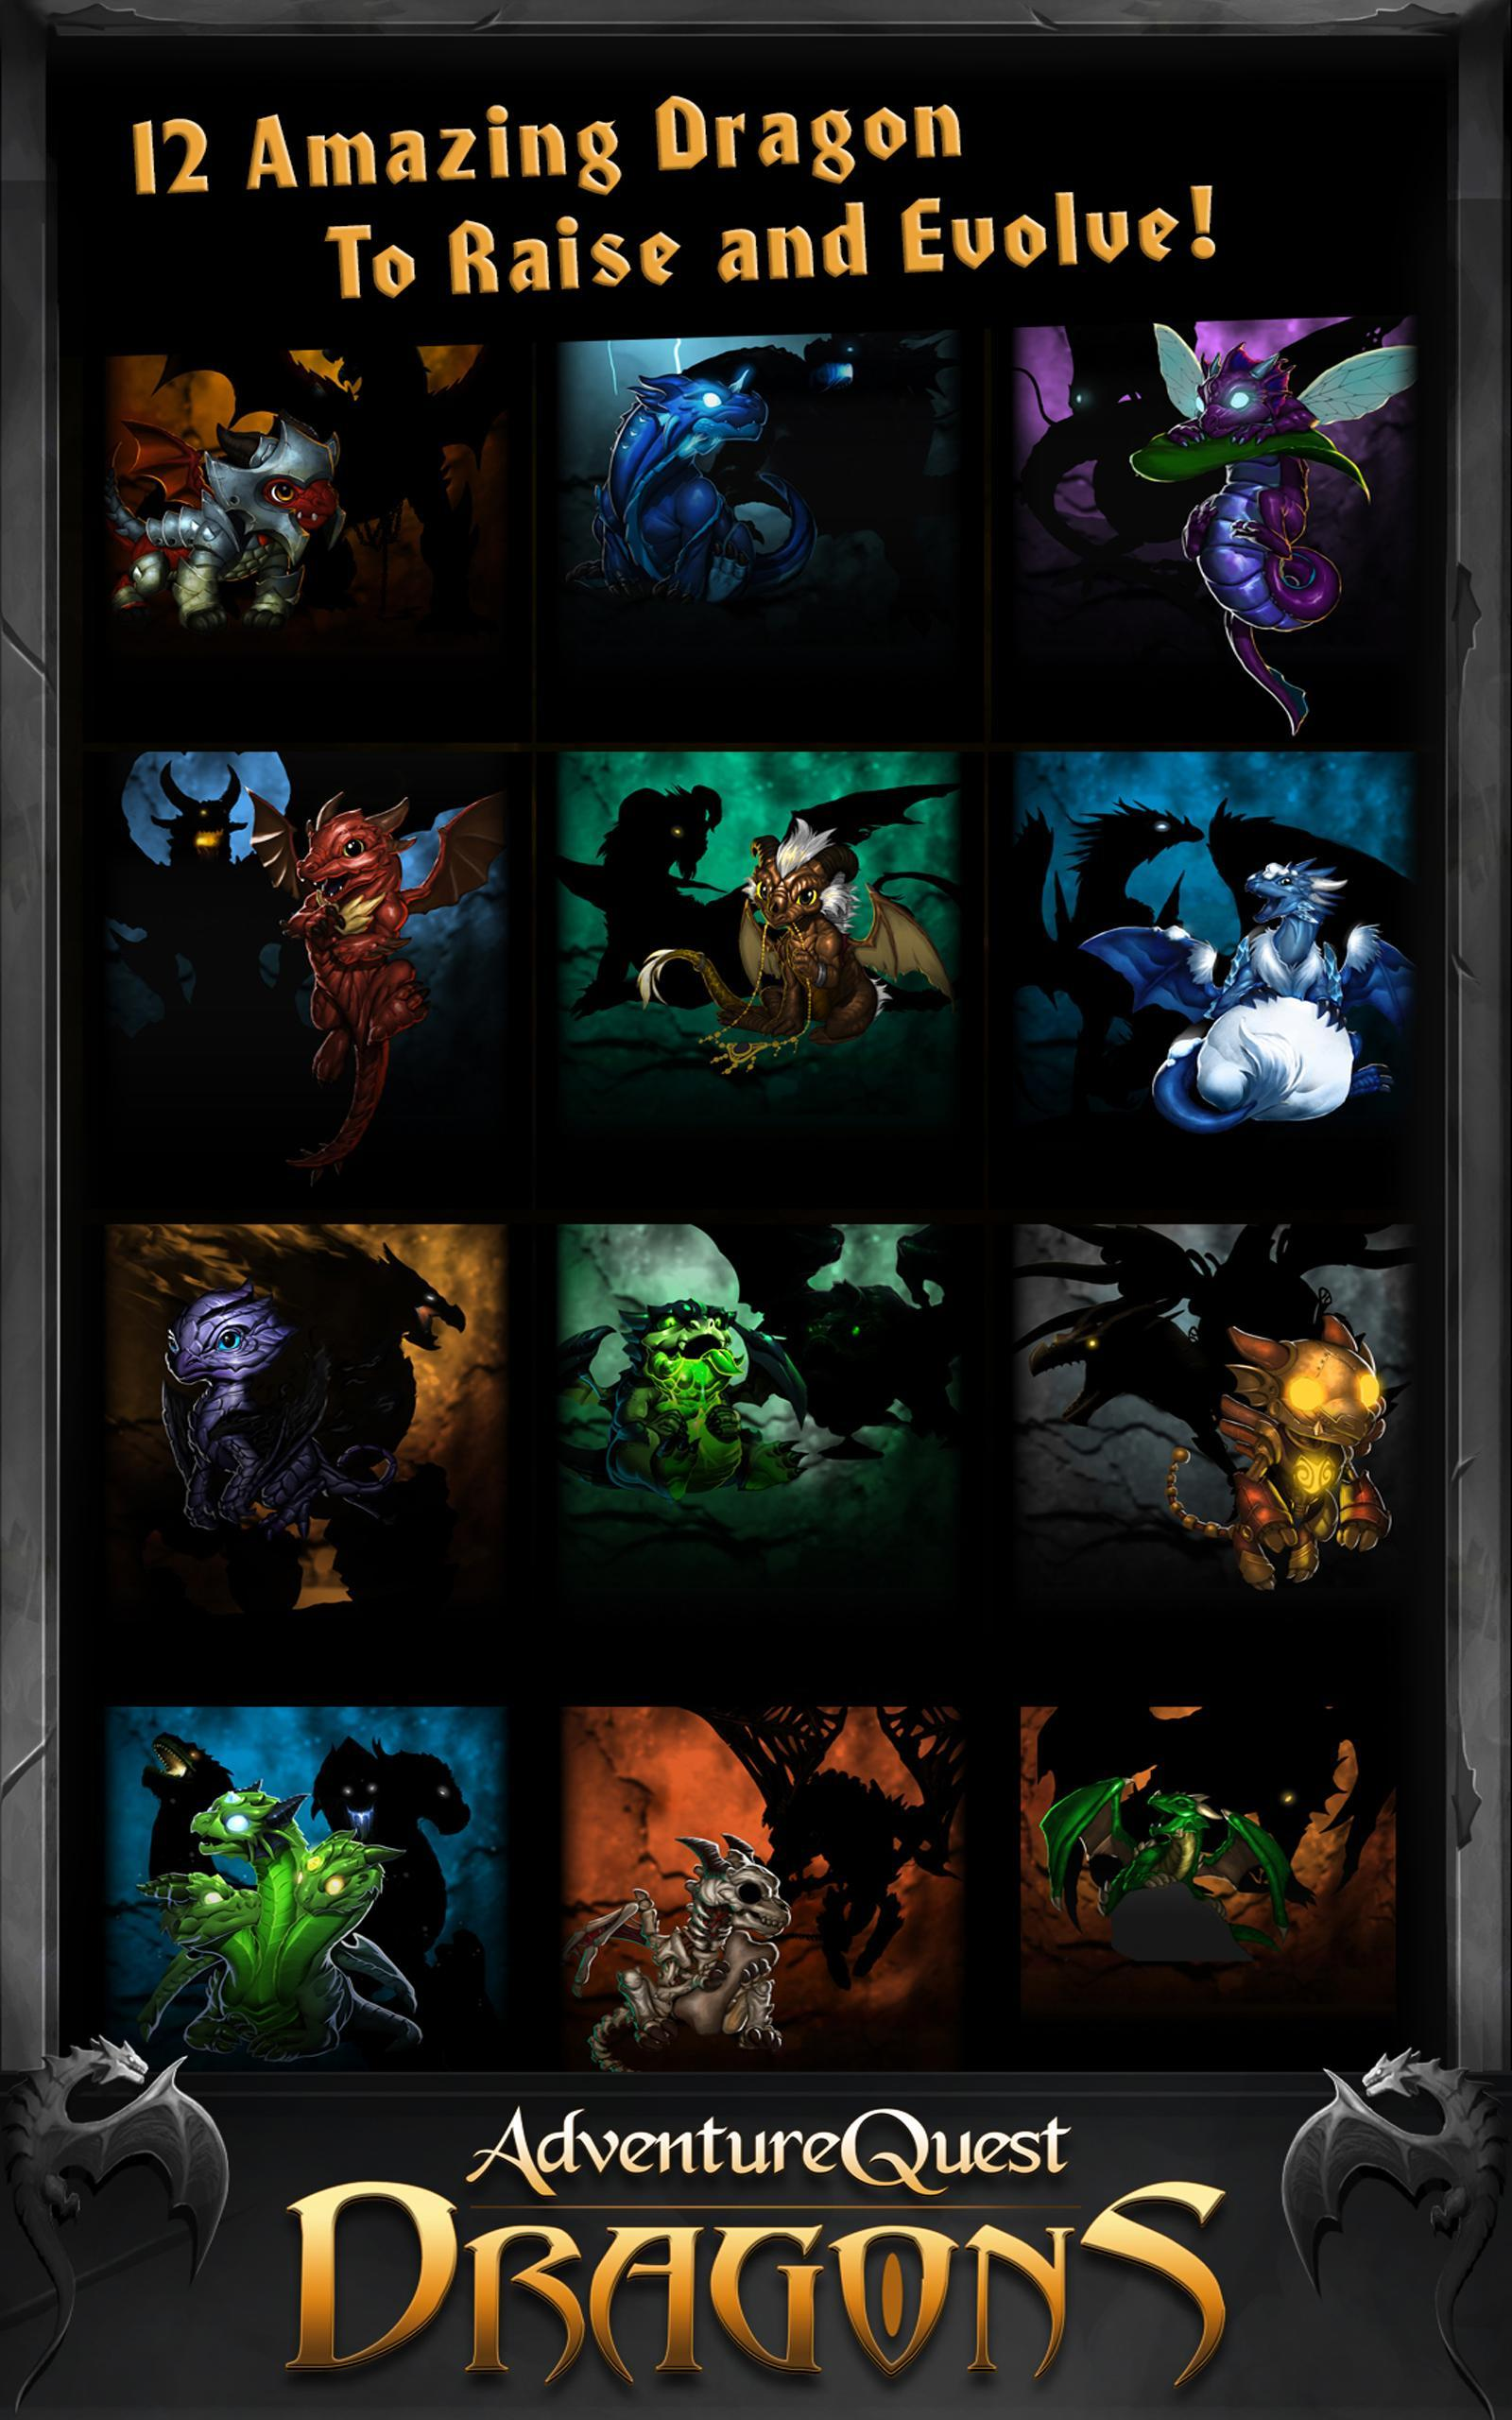 AdventureQuest Dragons for Android - APK Download